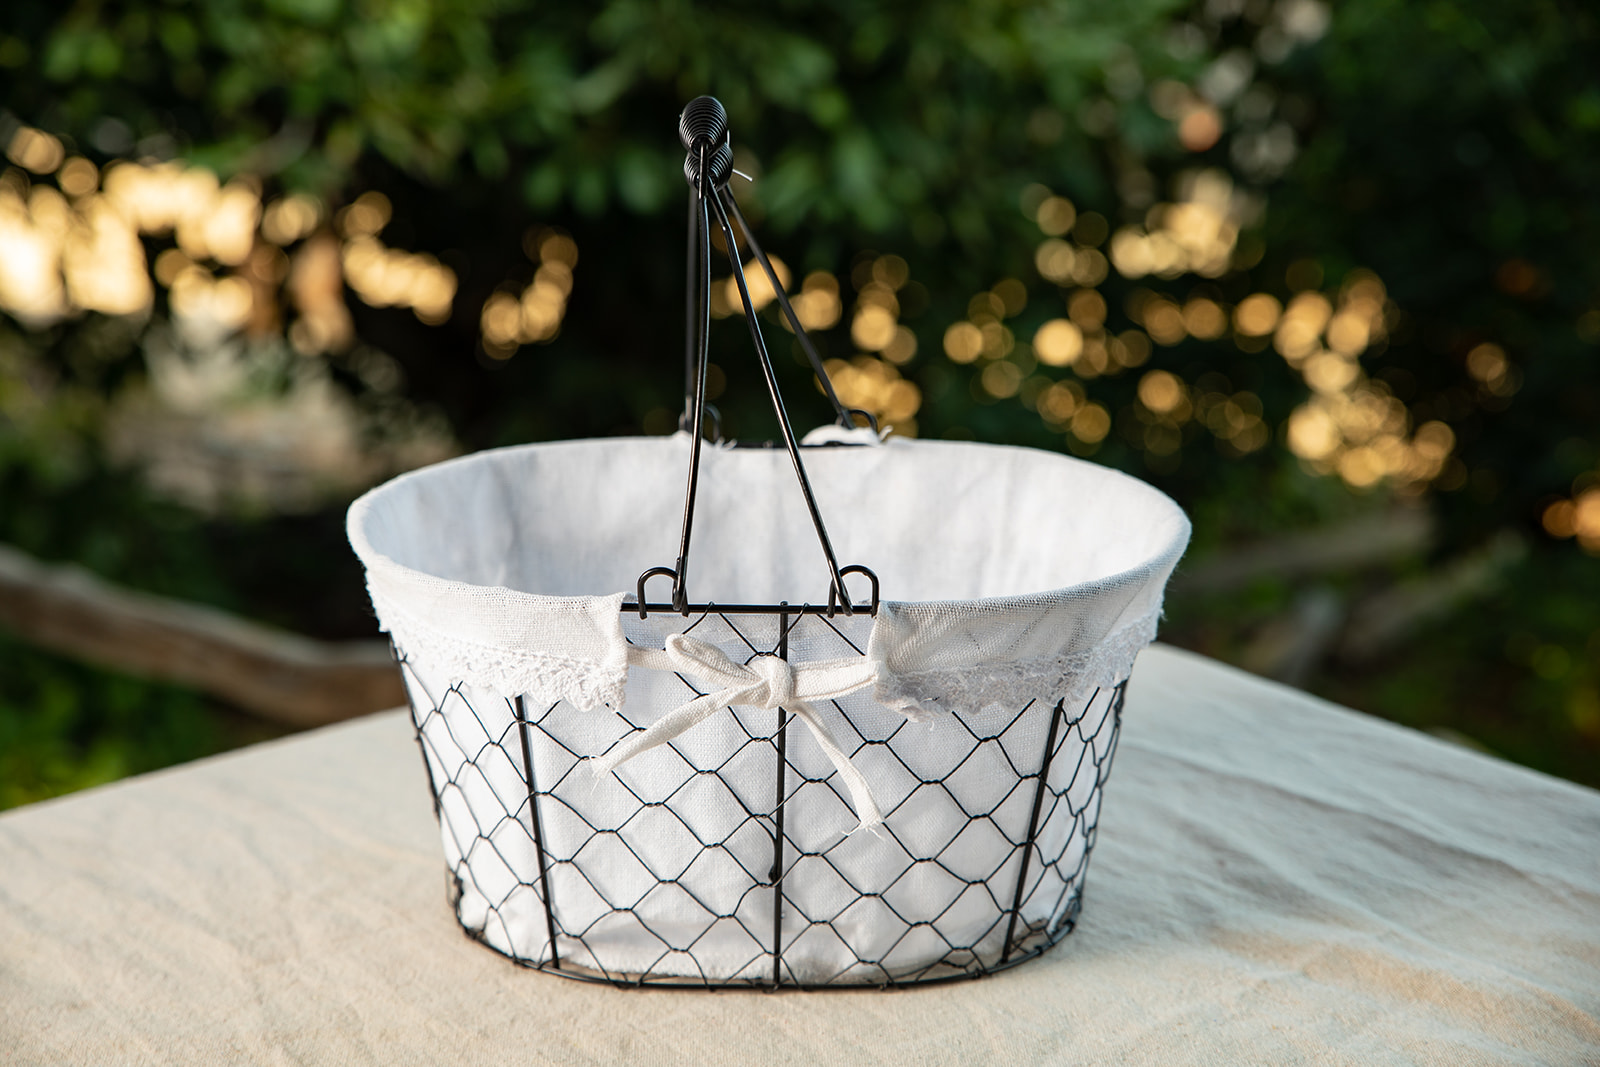 Metal Basket with White Lace Liner